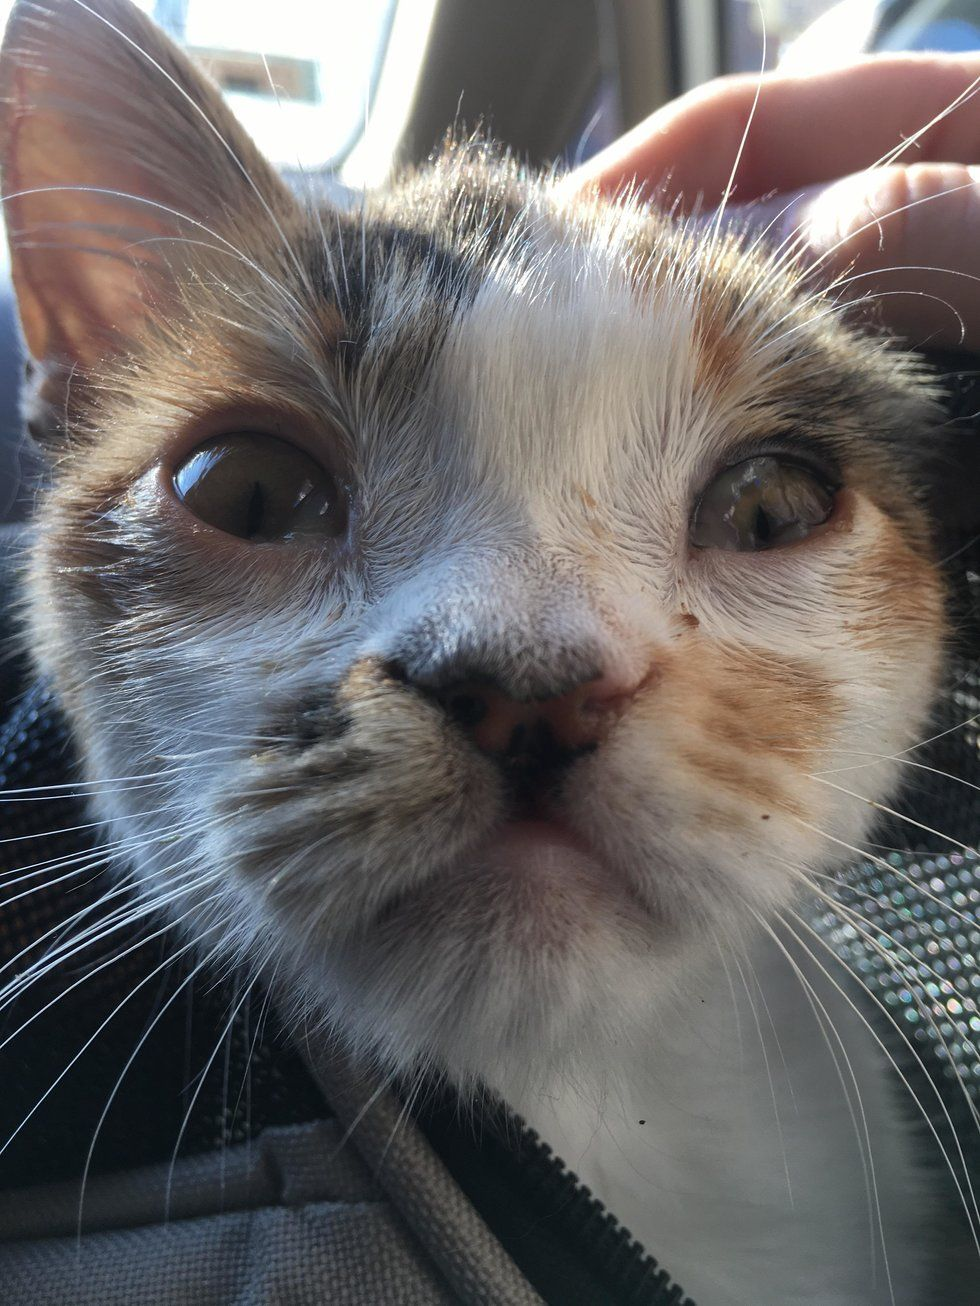 Please Help Stray Animals A Stray Calico Kitten Was Found Wobbling Around The Streets Of Chicago All Alone When She Was Given Lo Calico Kitten Kitten Animals